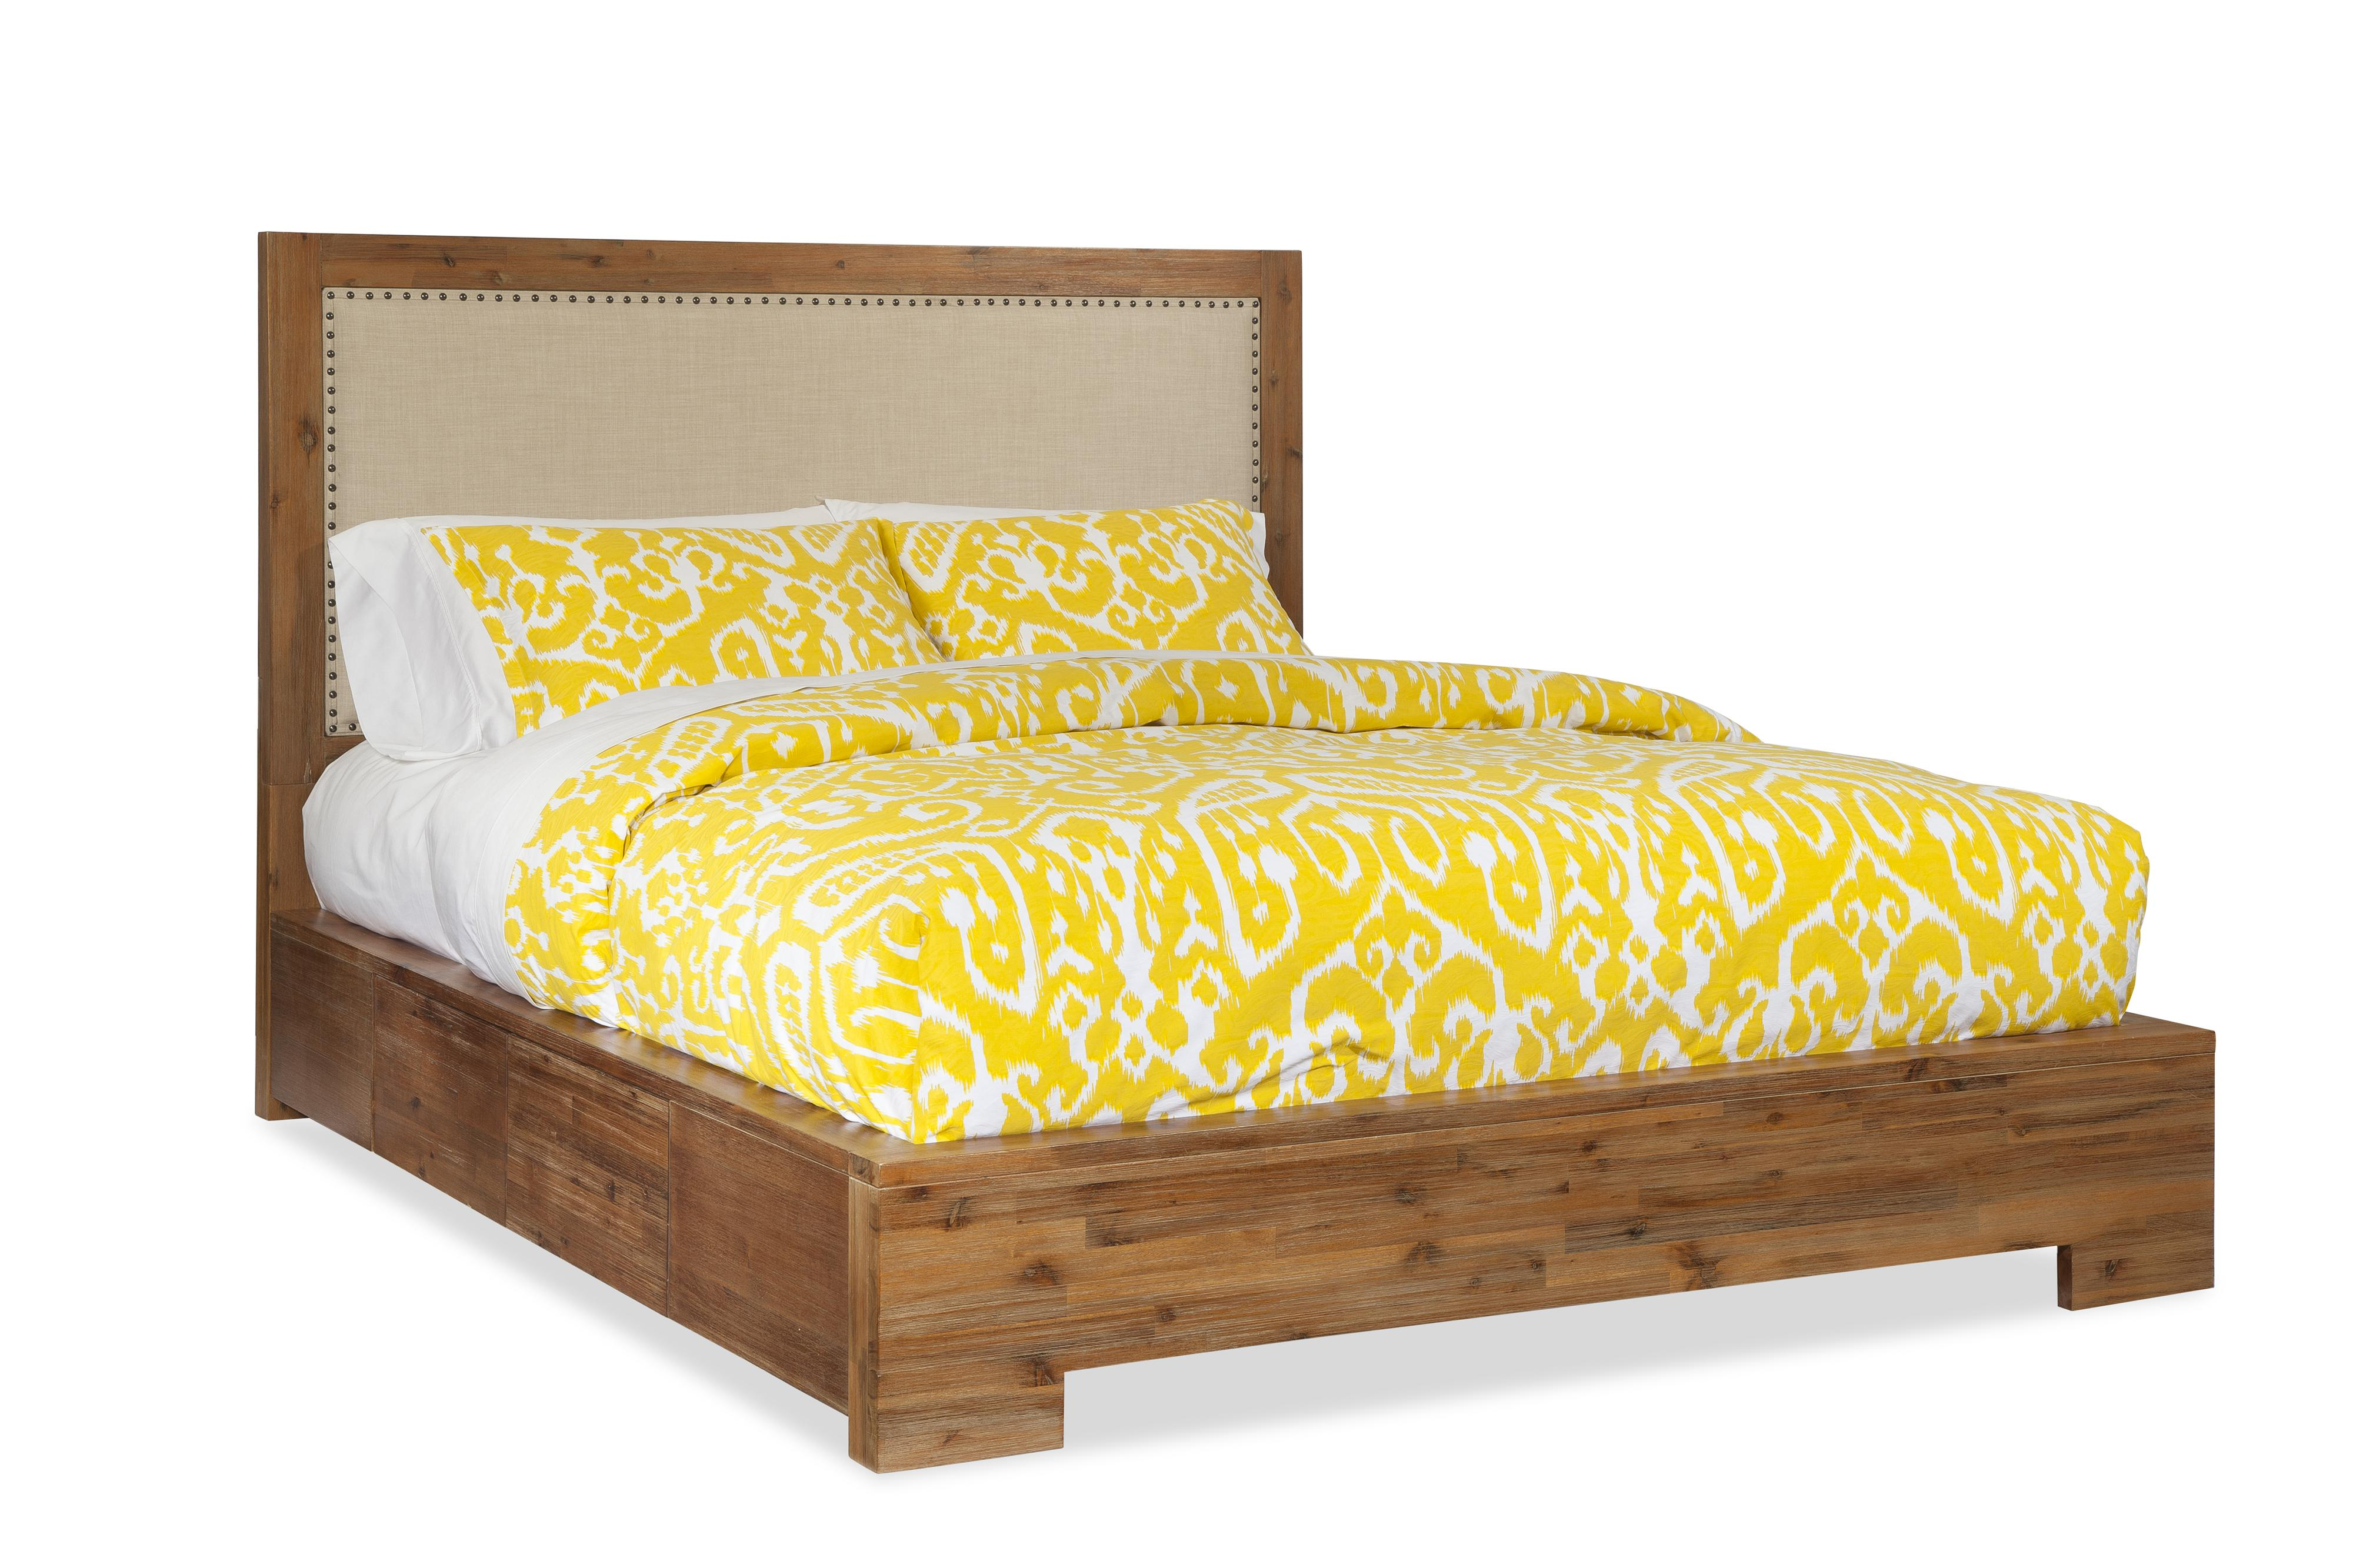 Cresent Fine Furniture Waverly Queen Upholstered Bed w/ Storage - Item Number: 5533QB+5531QRL+QRS+QSL